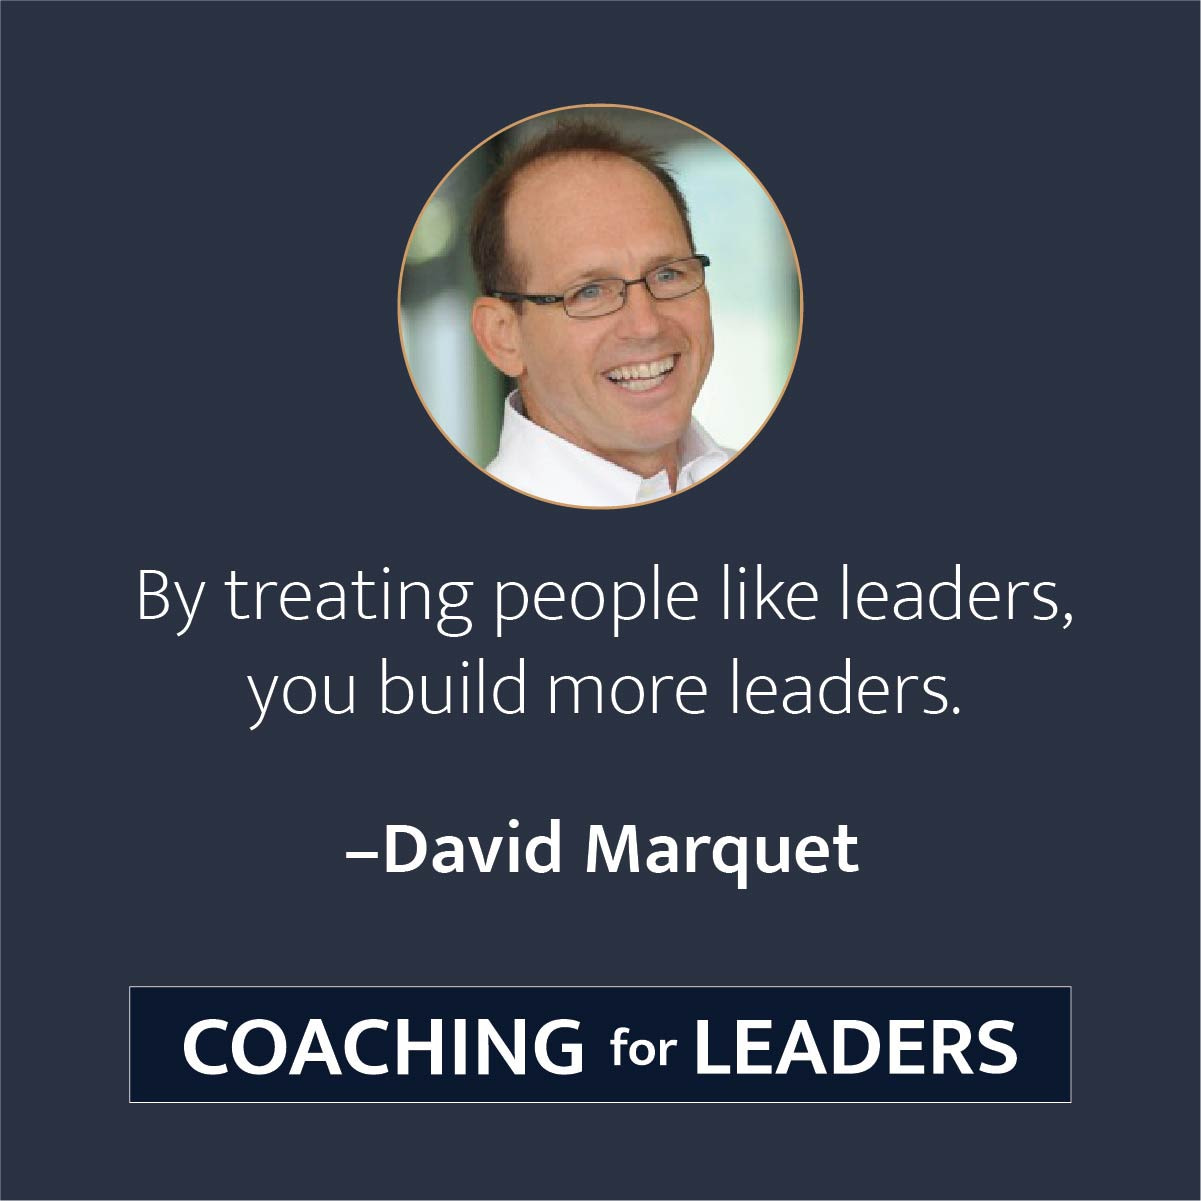 By treating people like leaders, you build more leaders.